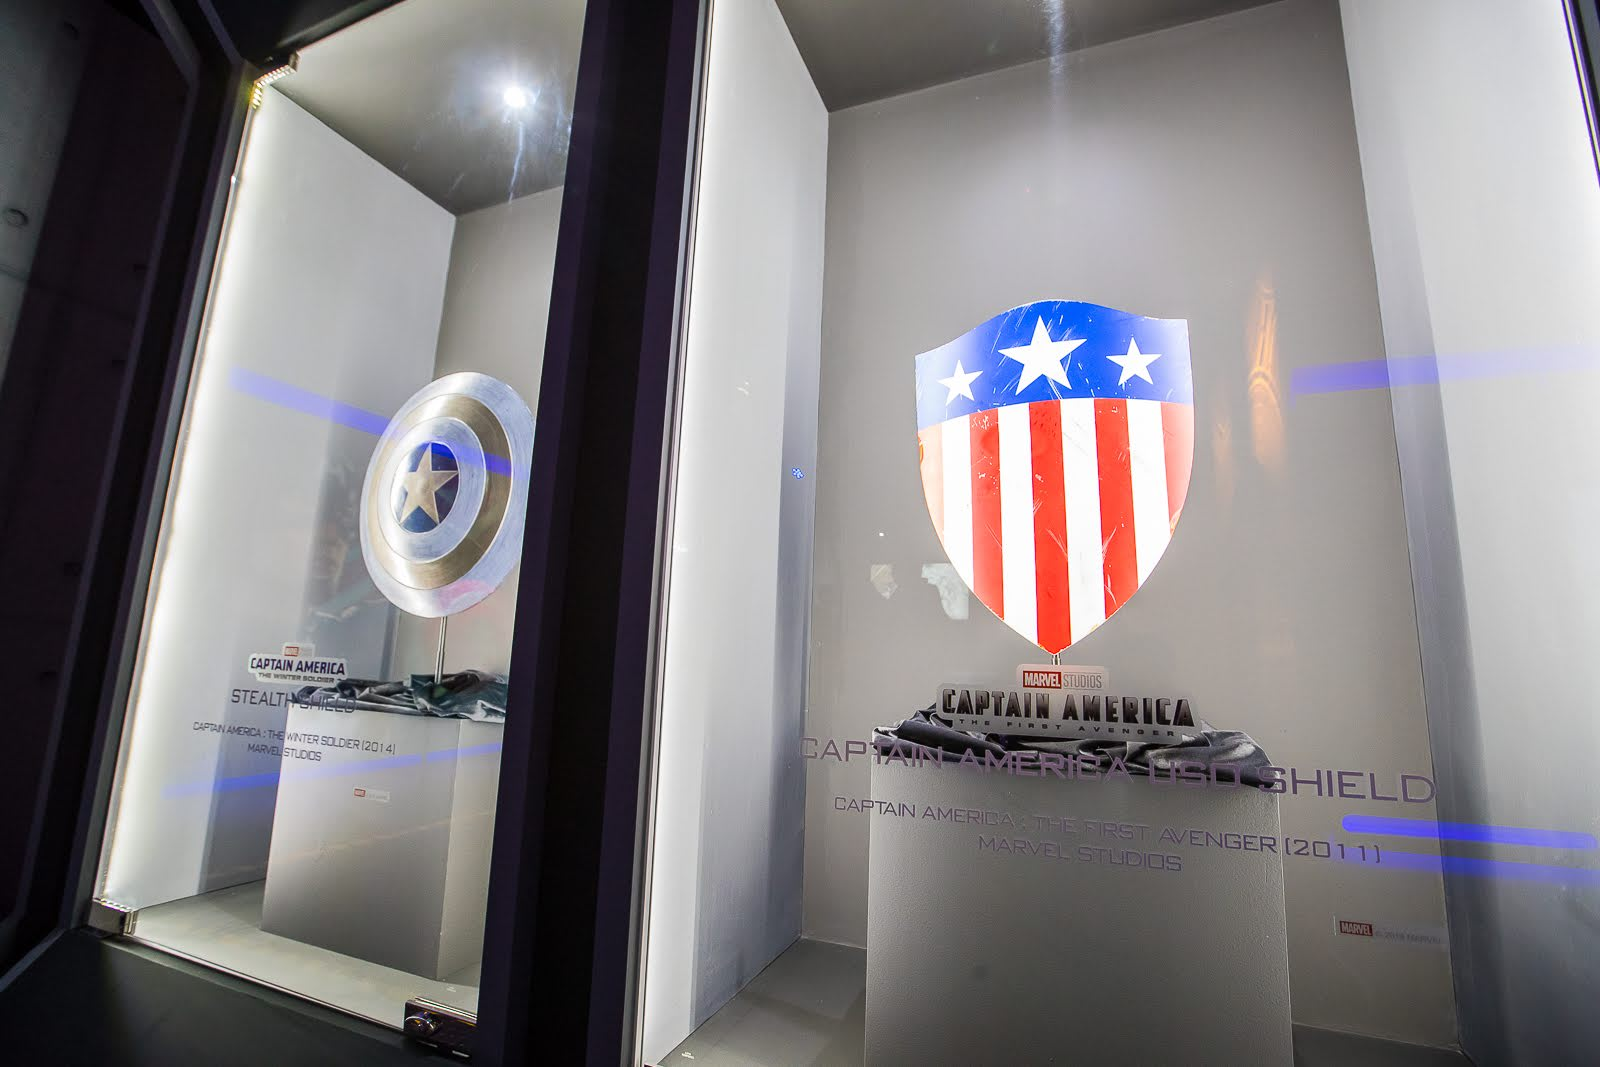 marvel exhibition captain america shield movie prop